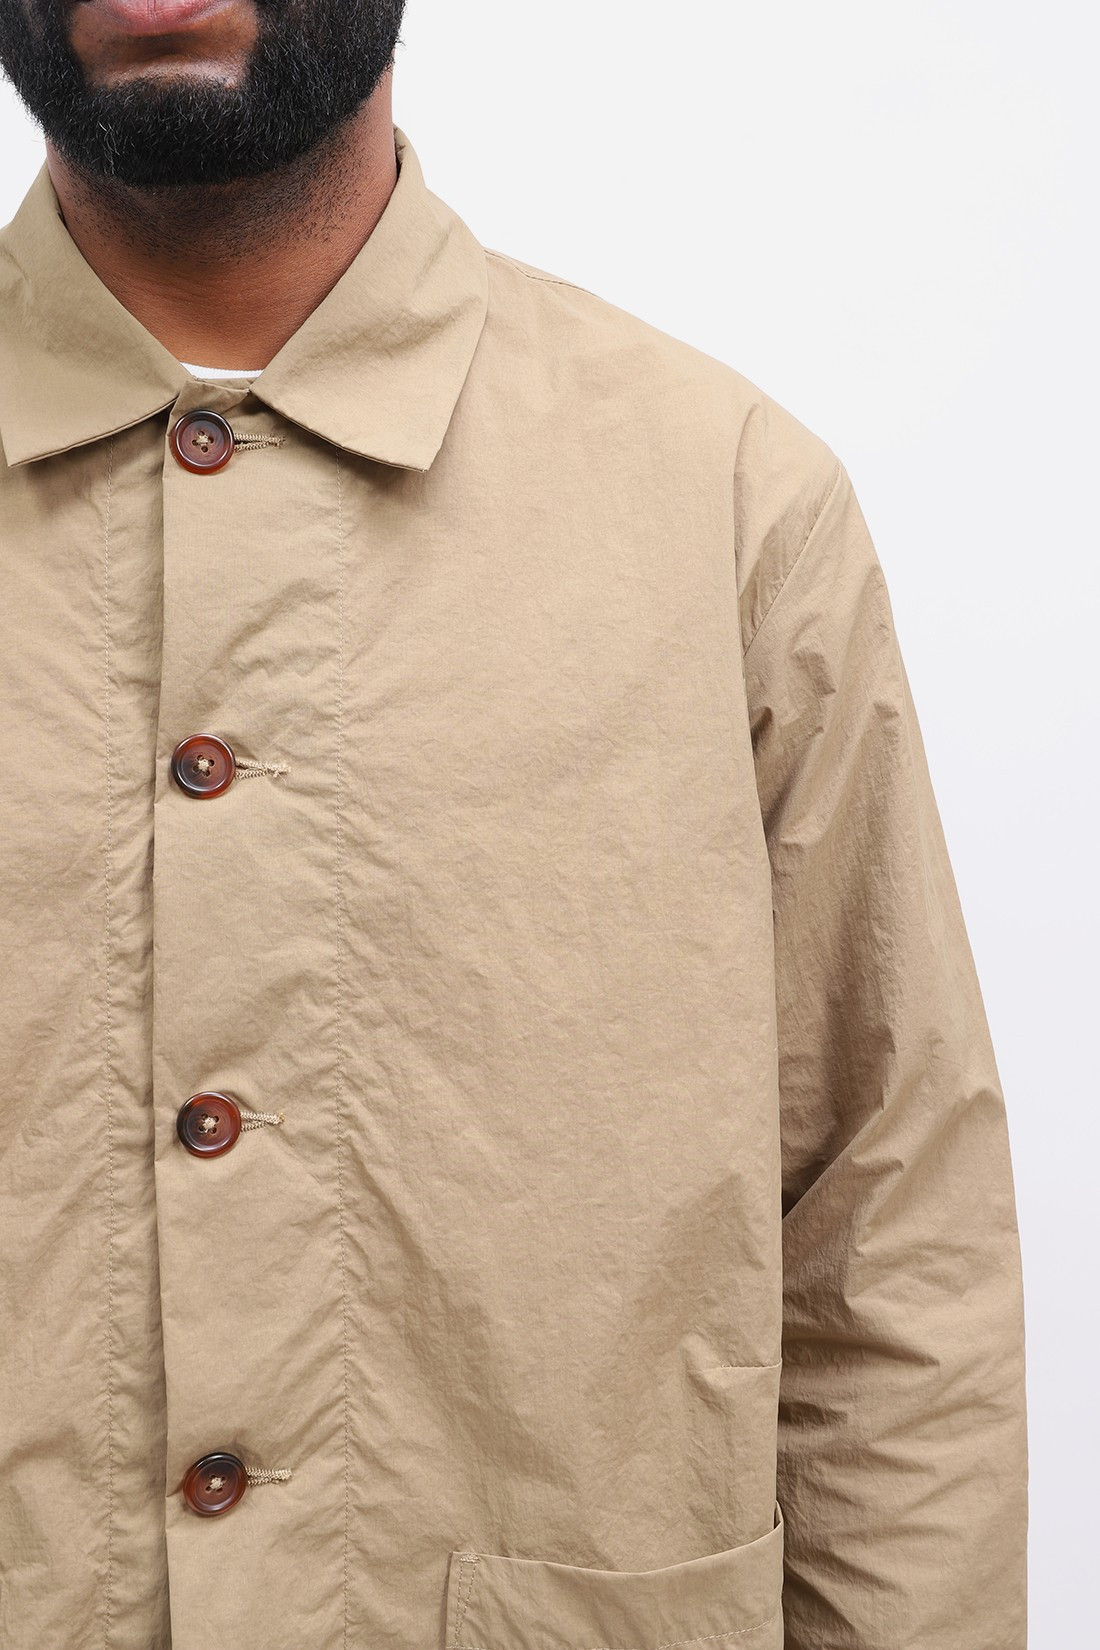 UNIVERSAL WORKS / Travail shirt recycled nylon Sand